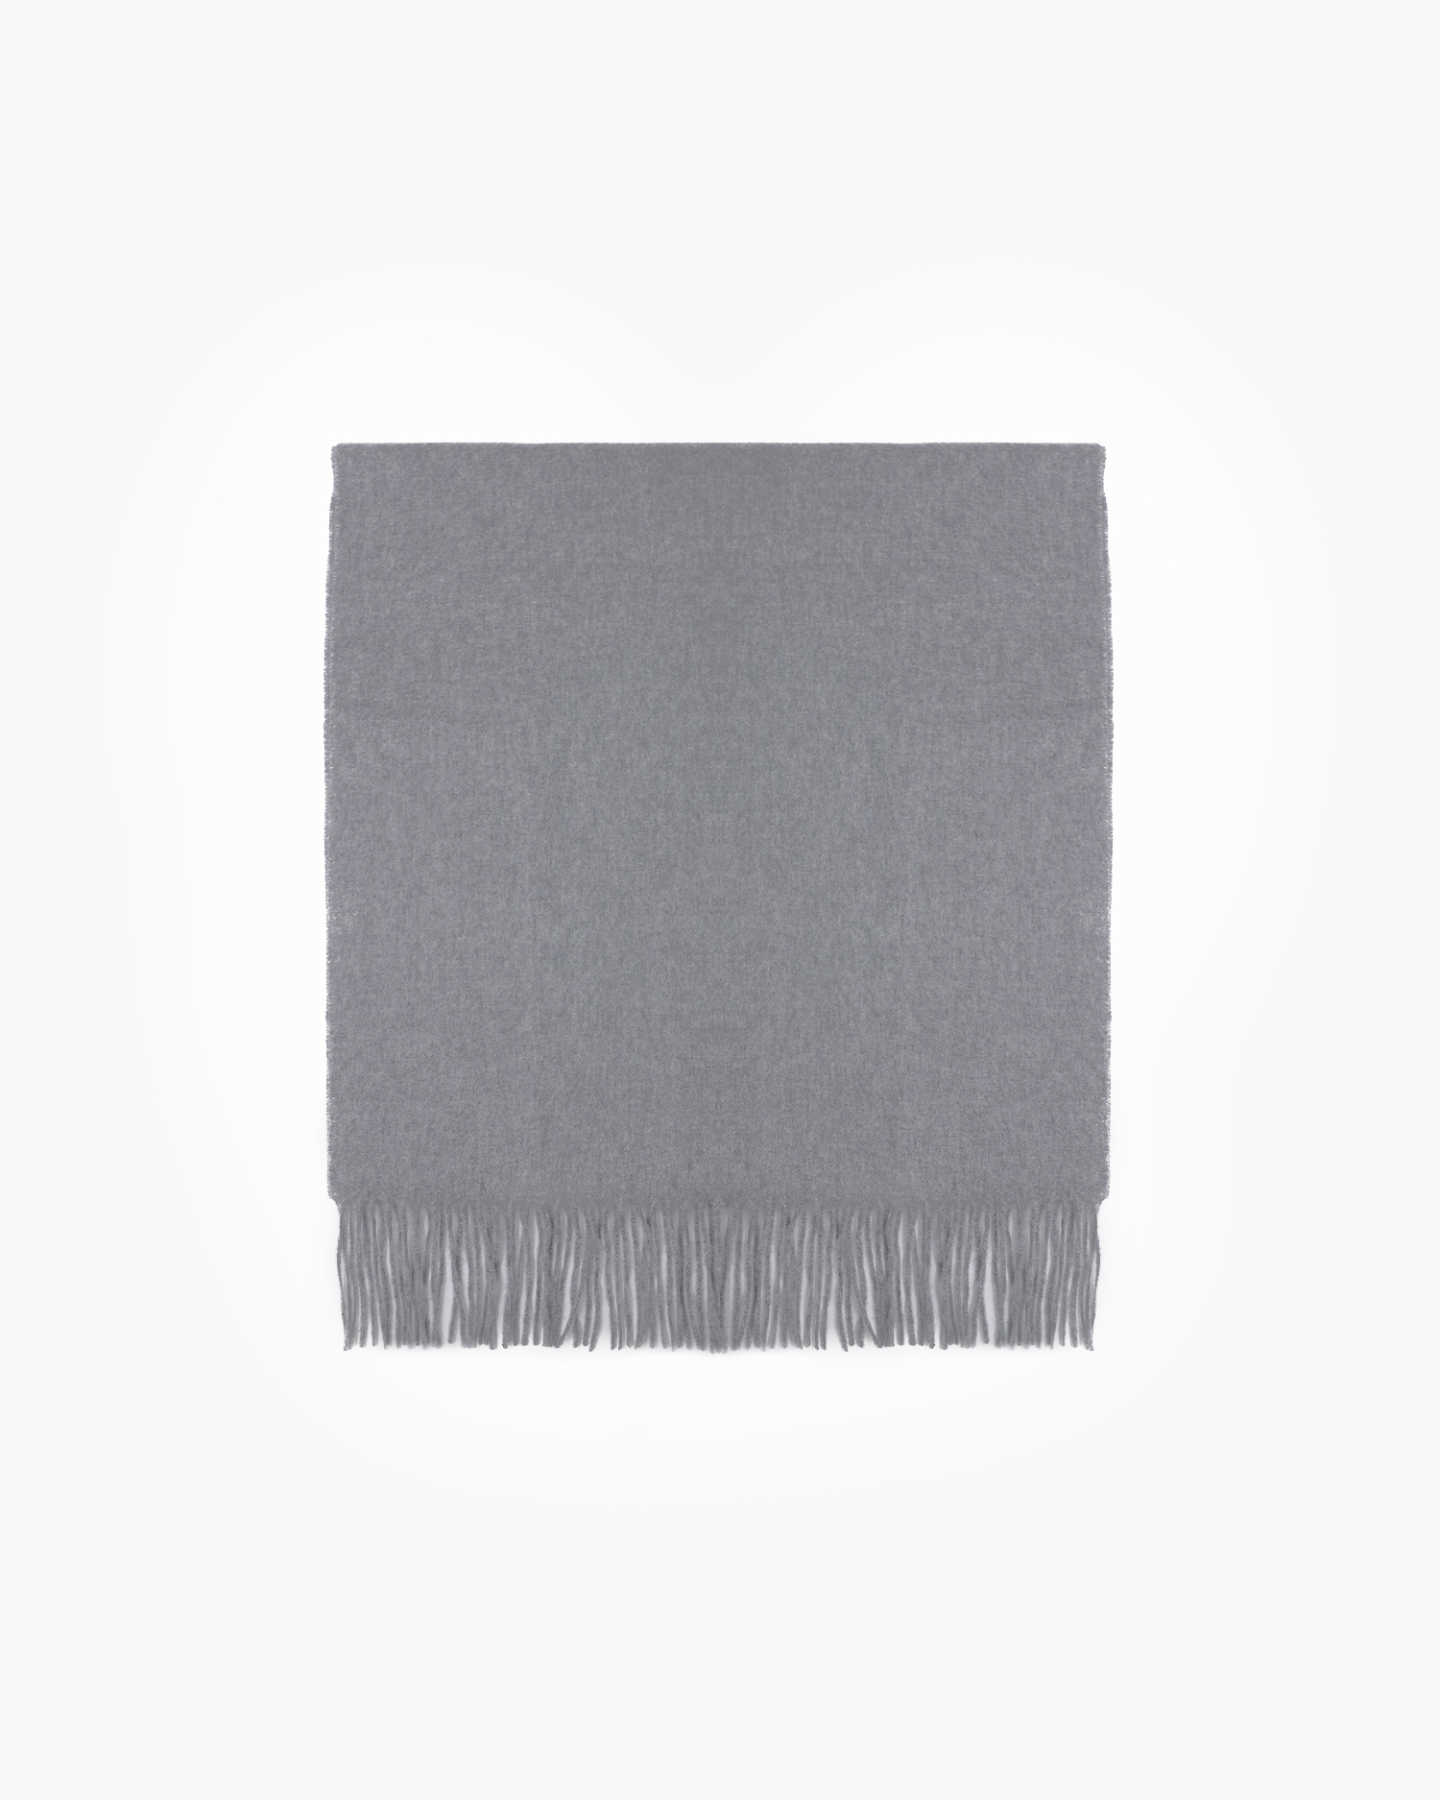 Mongolian Cashmere Throw - undefined - 0